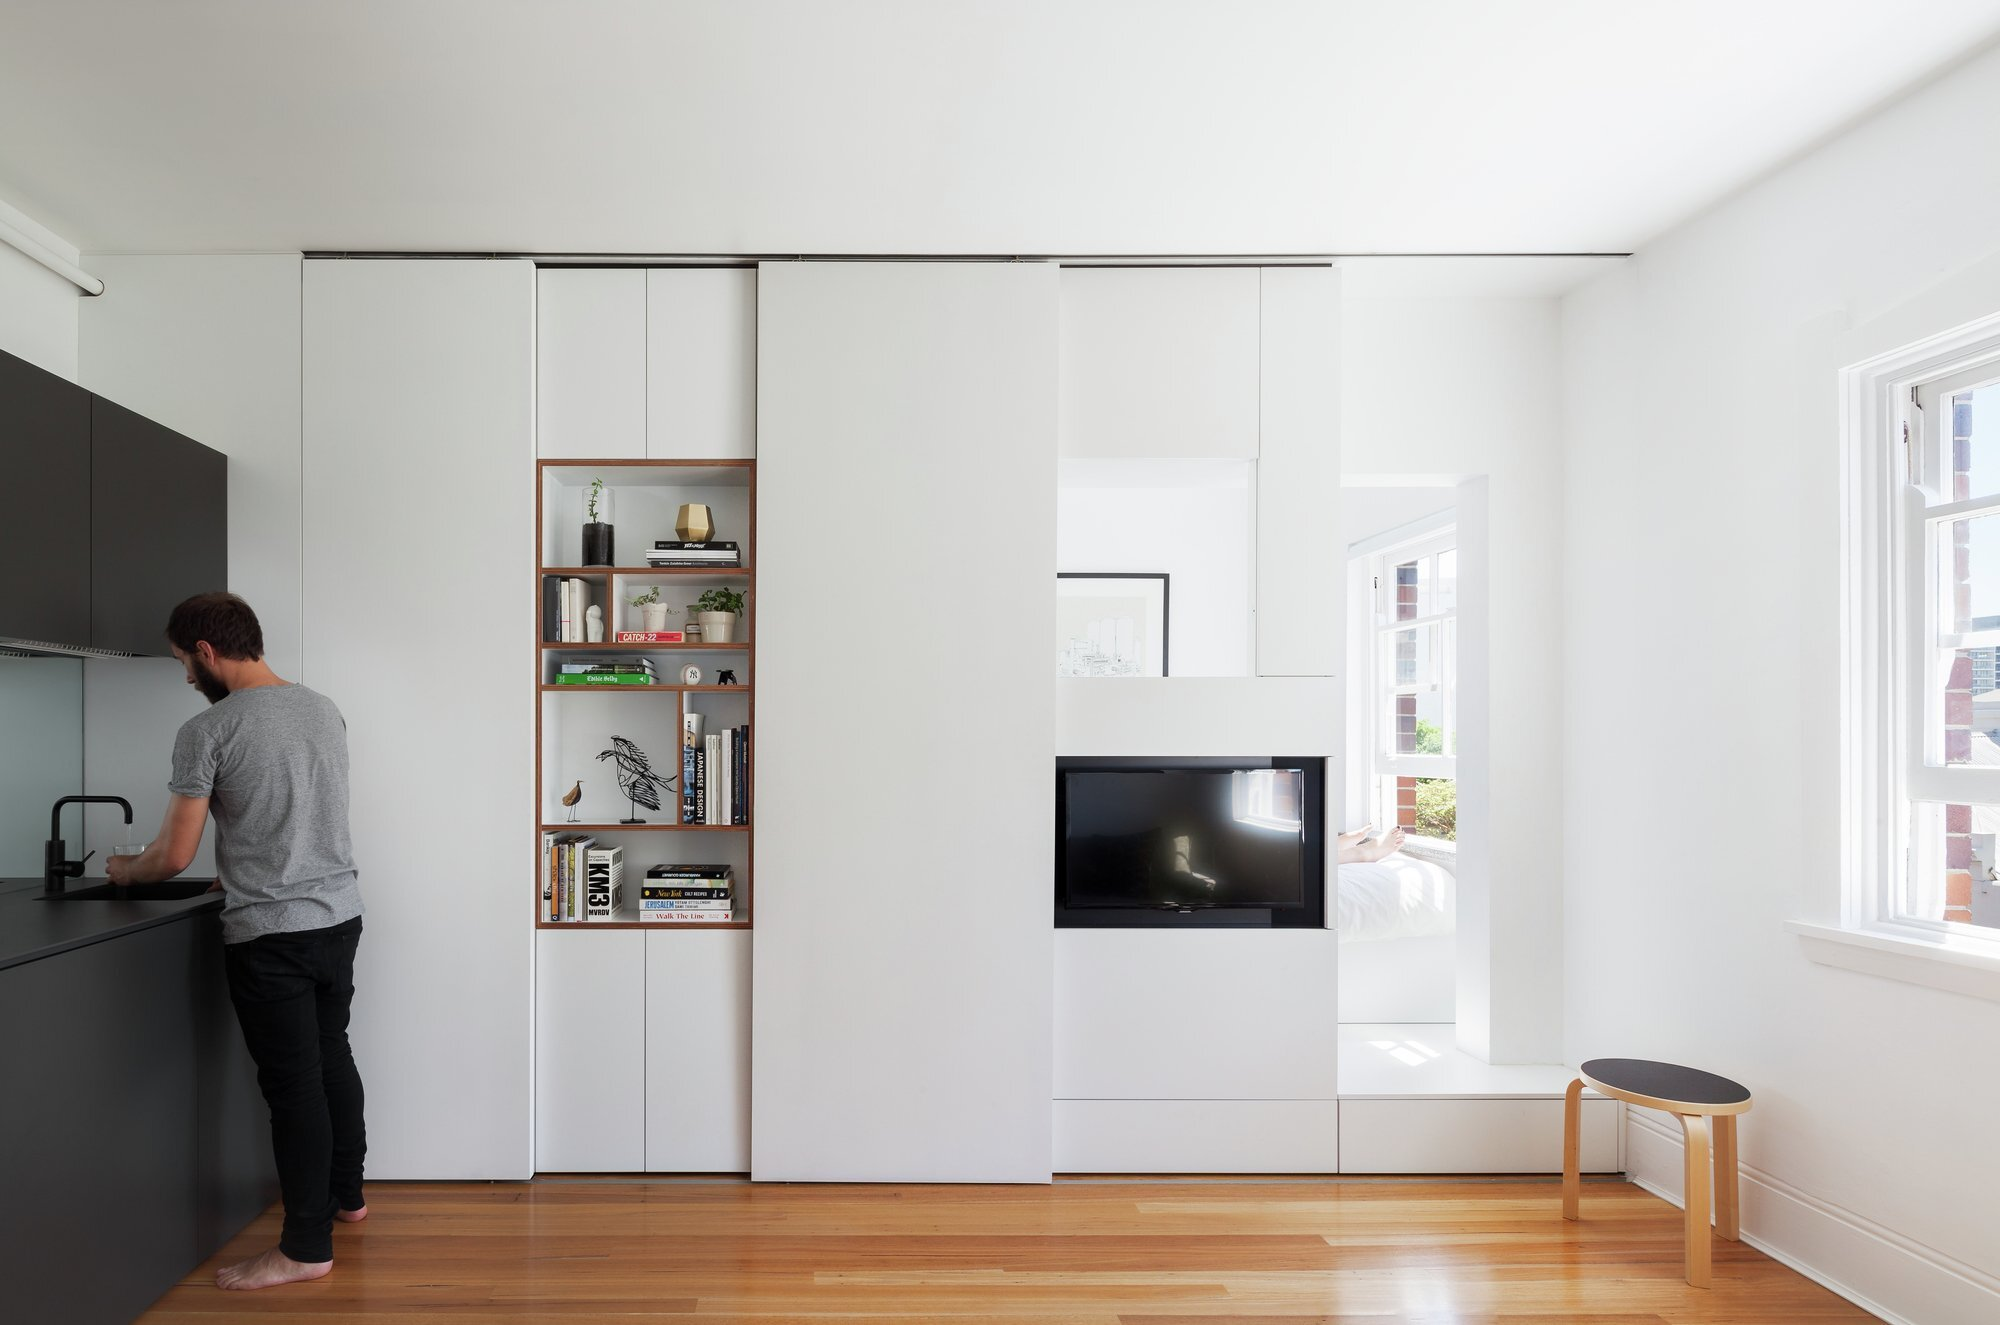 Darlinghurst Apartment - A Tiny, Flexible and Functional Home